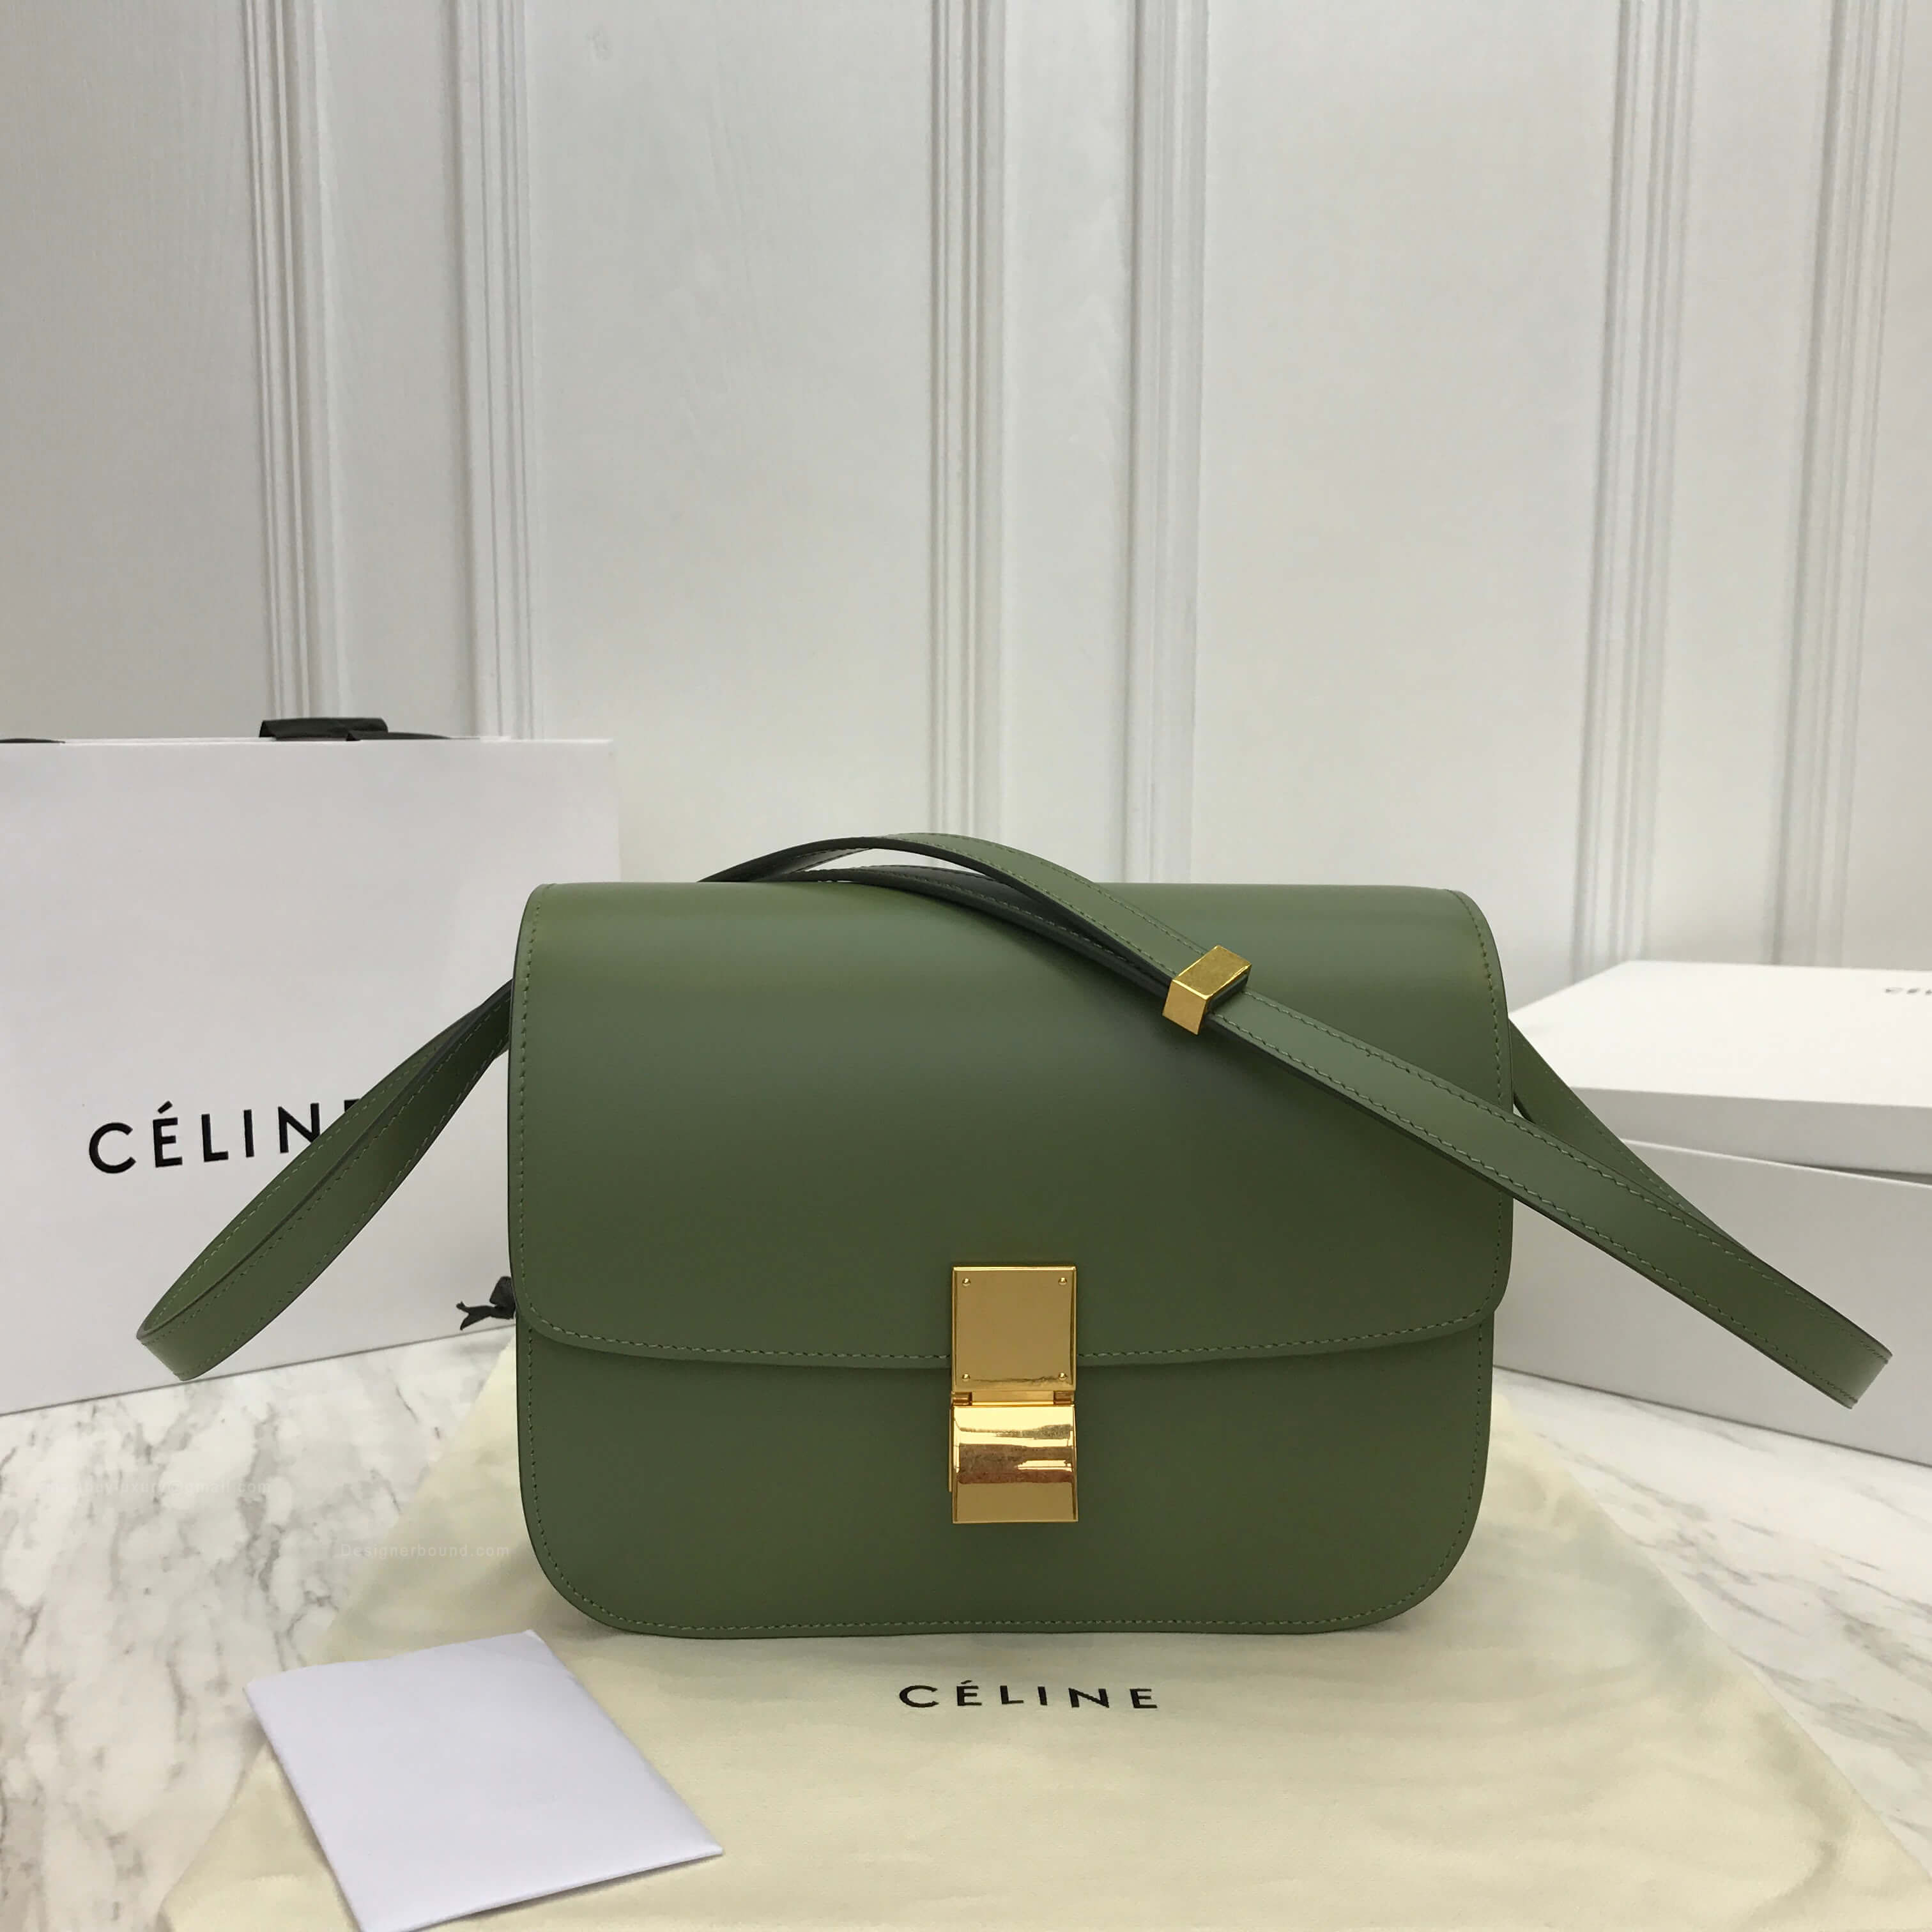 Celine Classic Box Bag Medium in Olive Liege Calfskin